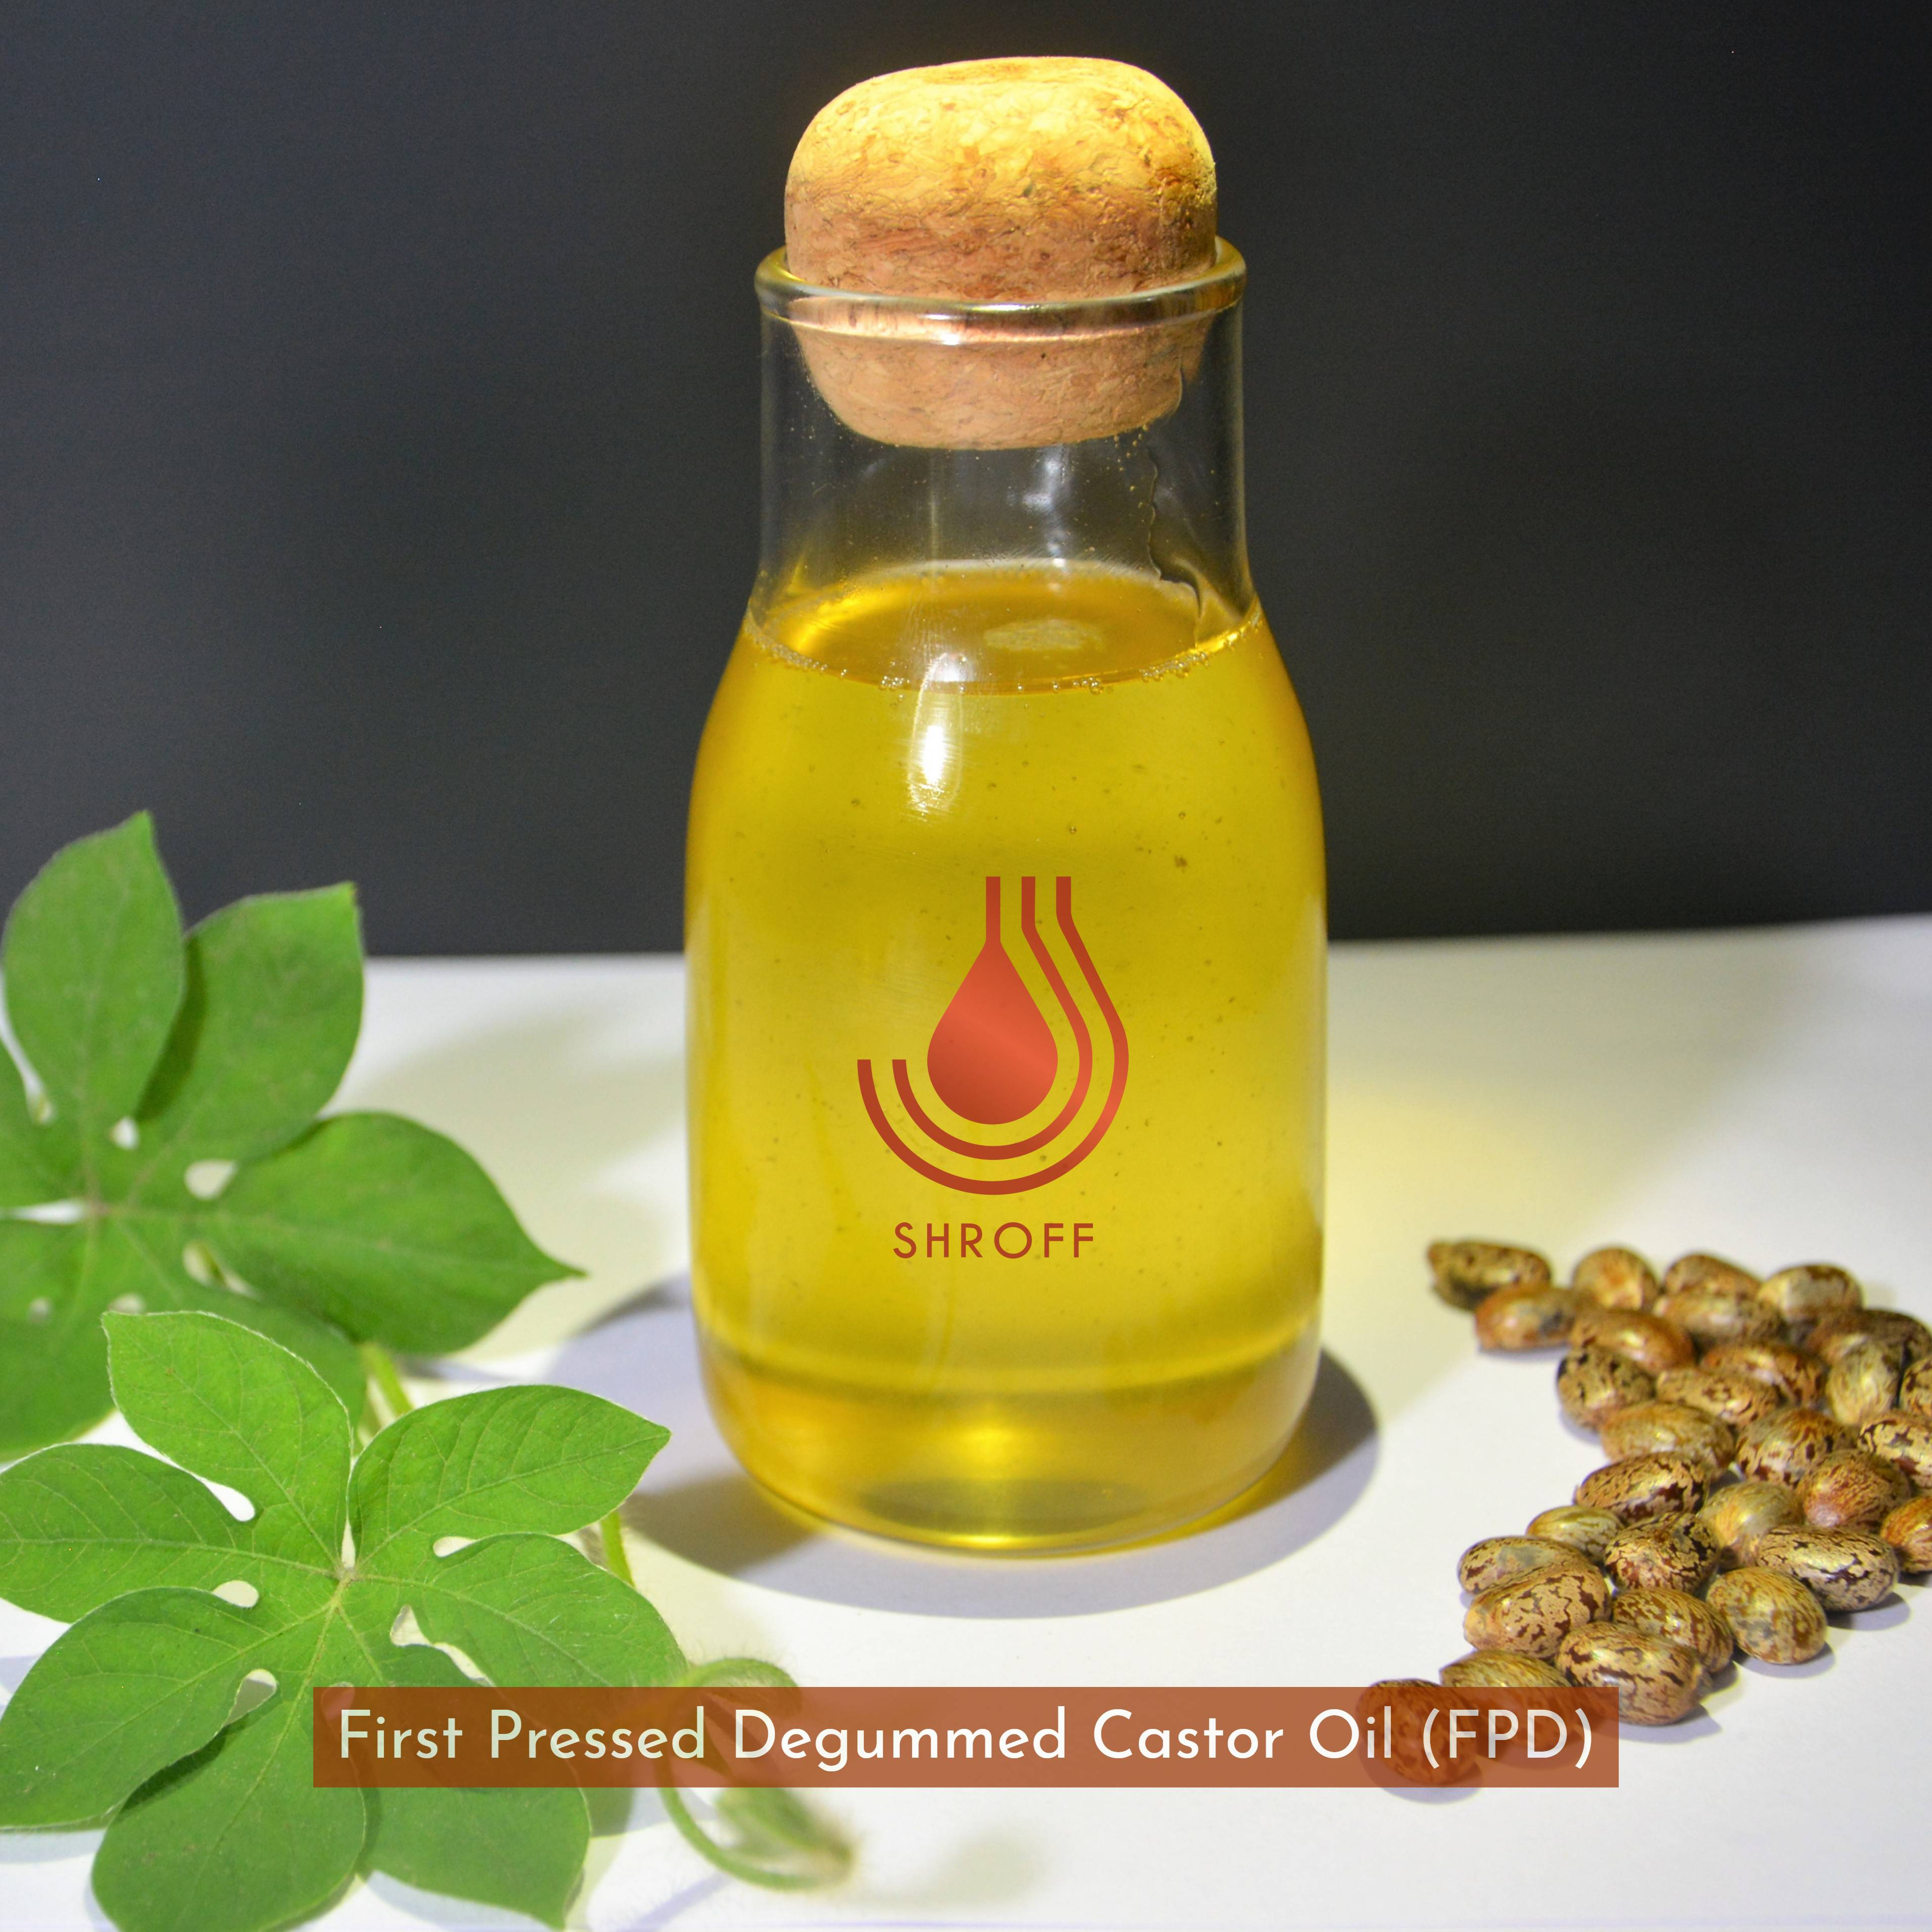 First Pressed Degummed Castor Oil (FPD)